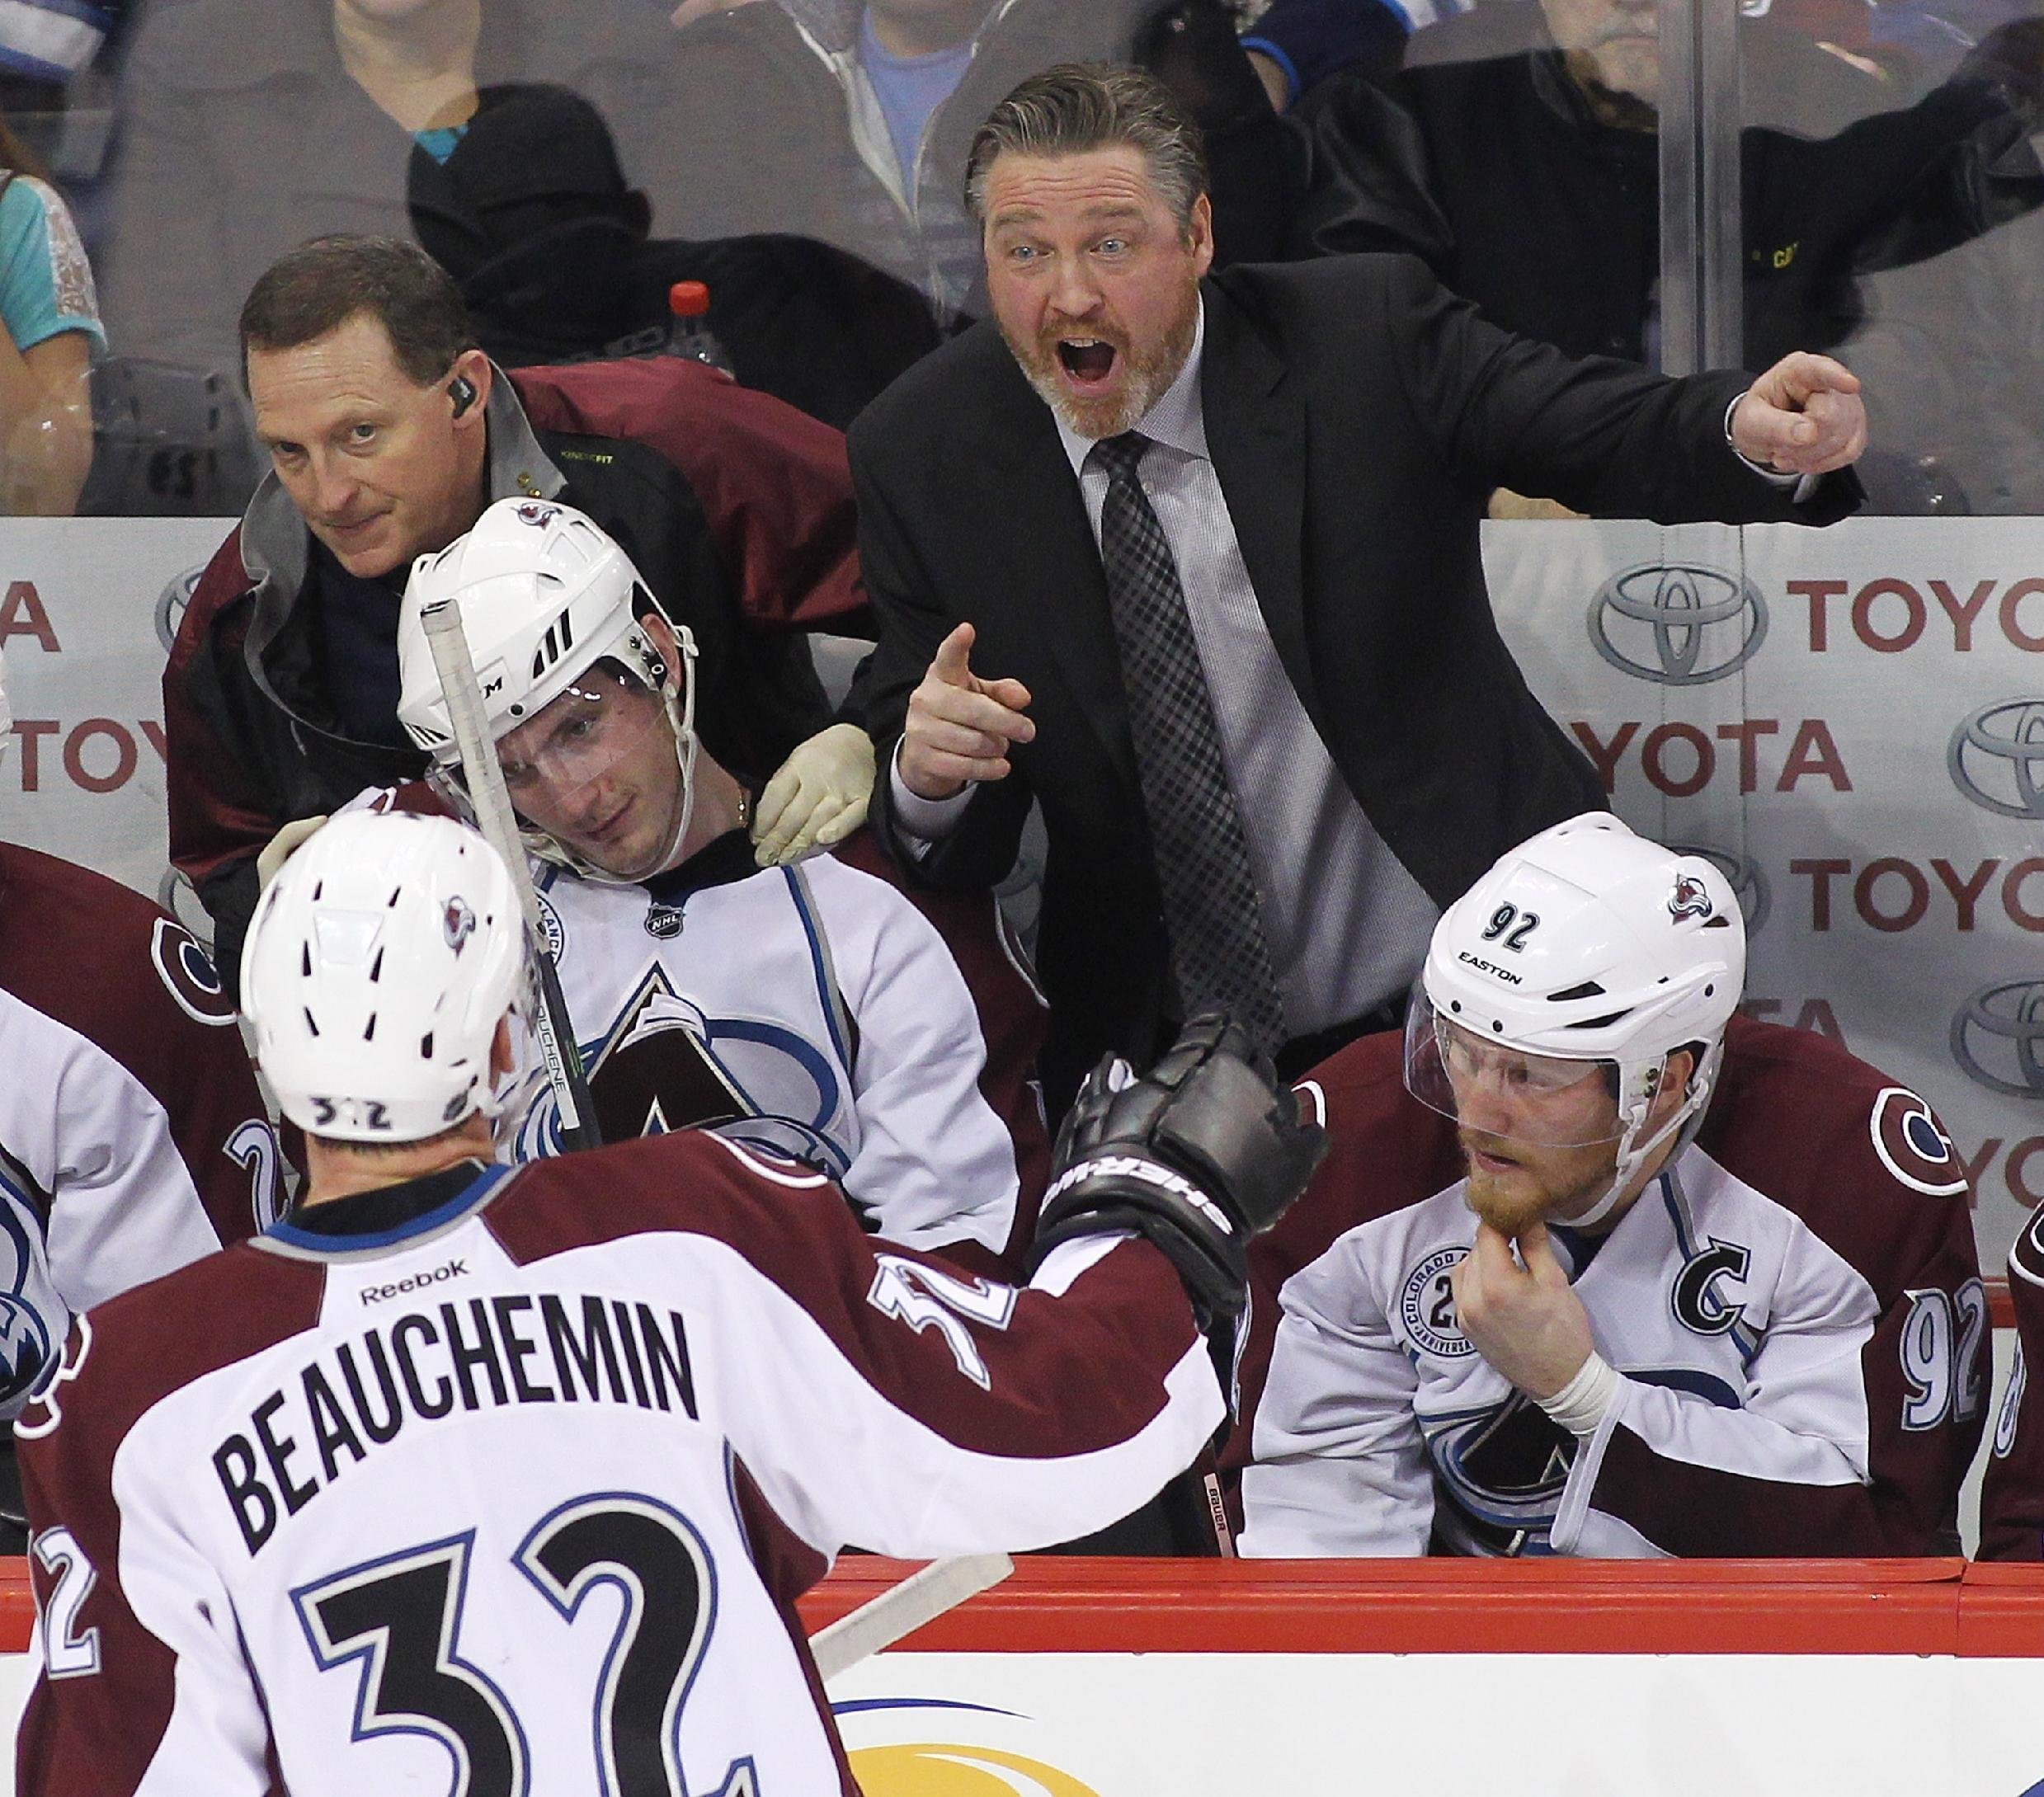 Watch Patrick Roy nearly explode after losing coach's challenge (Video)